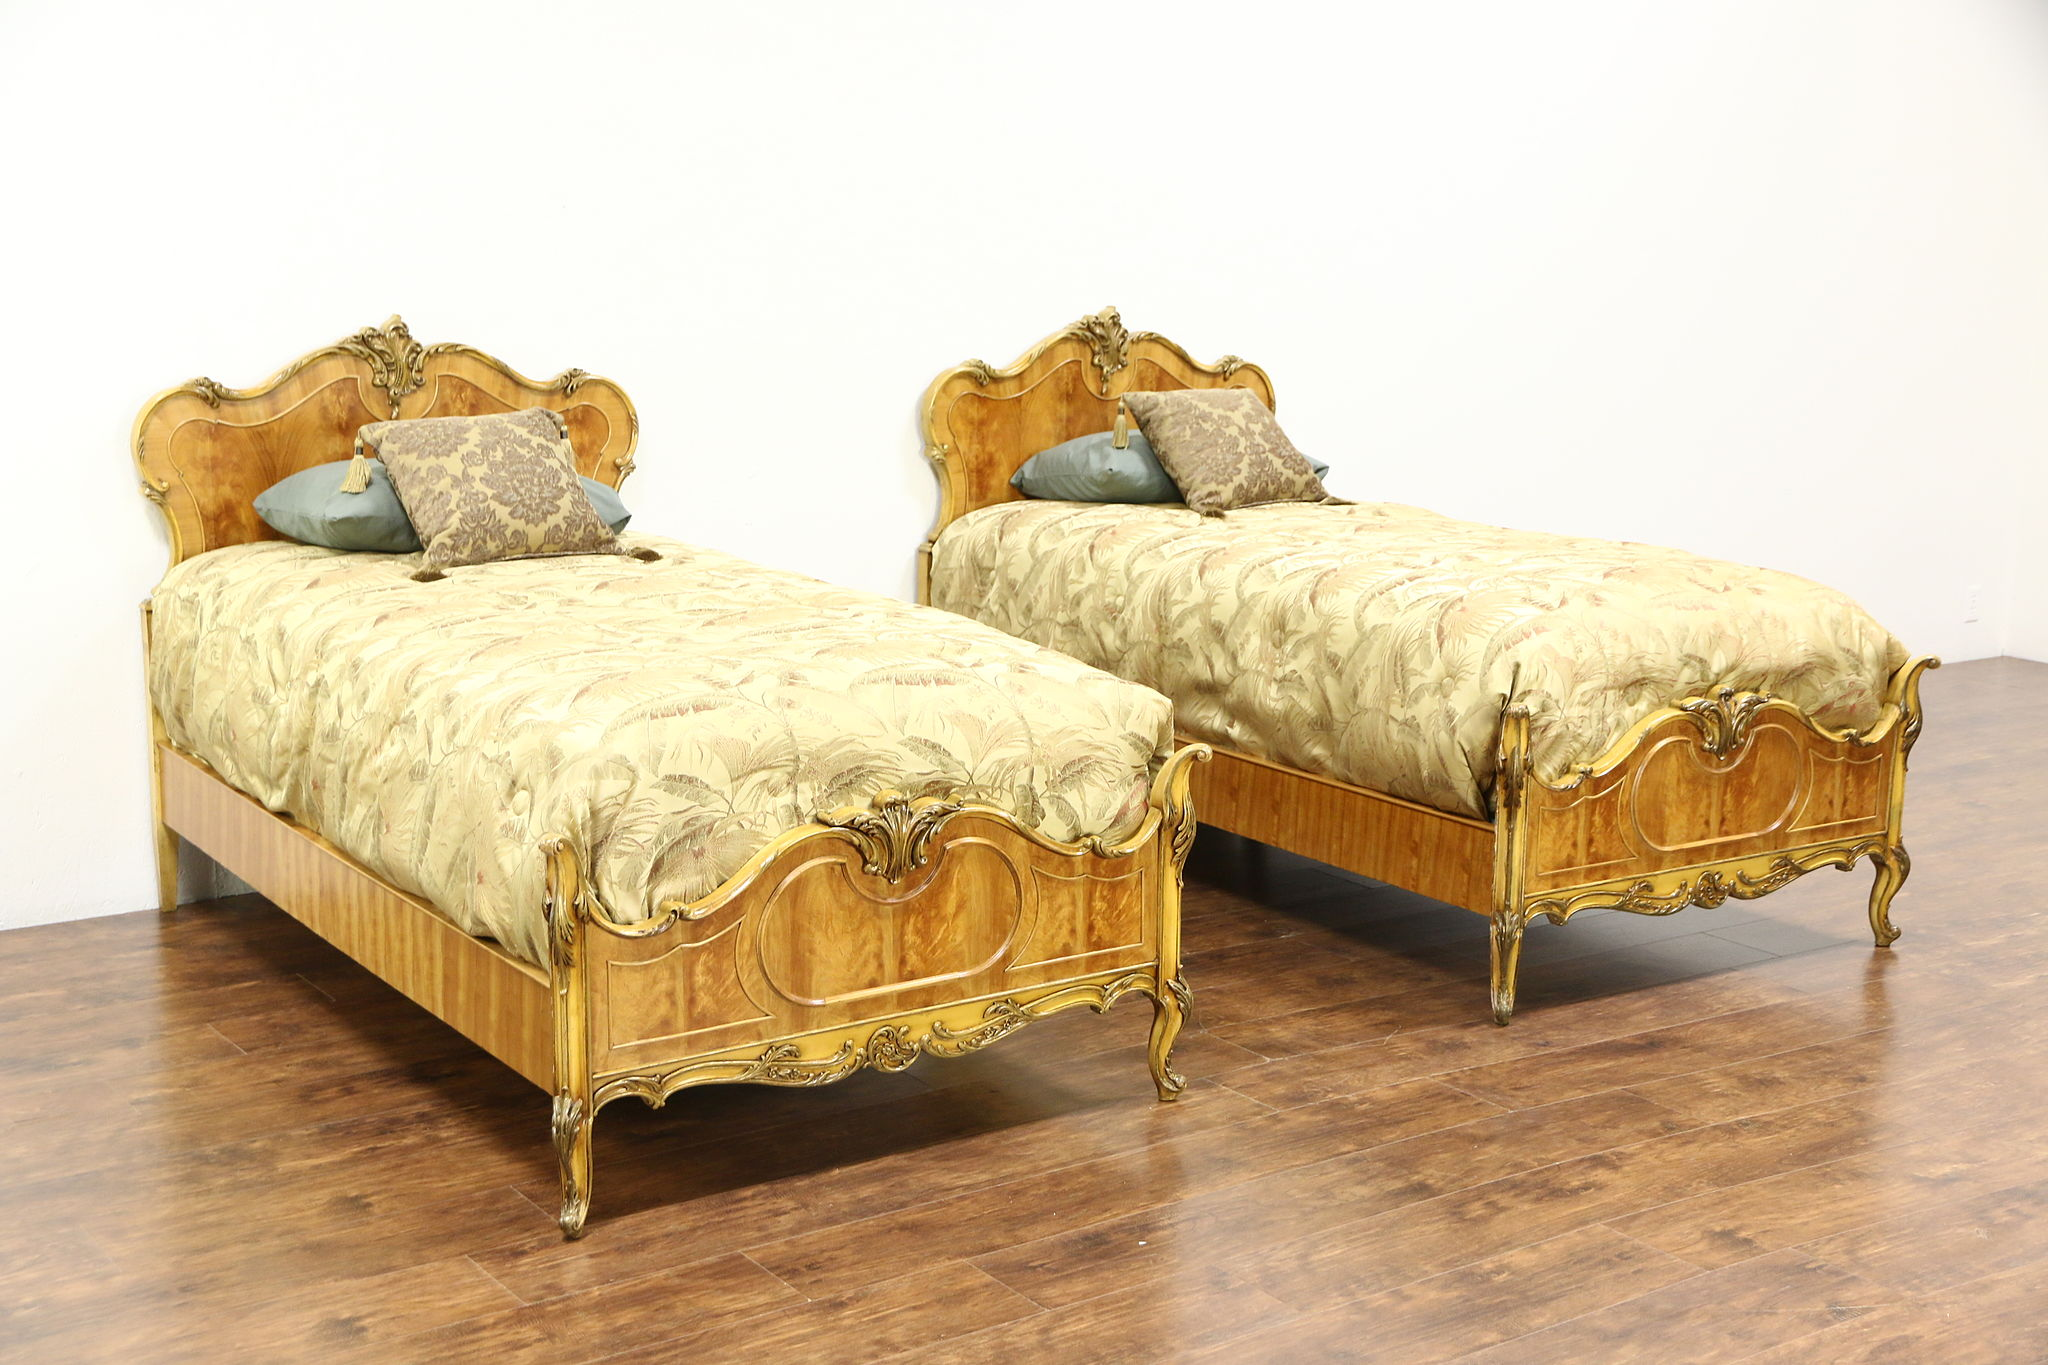 Sold Pair Of Satinwood Hand Painted 1940 Vintage Twin Or Single Beds Harp Gallery Antiques Furniture